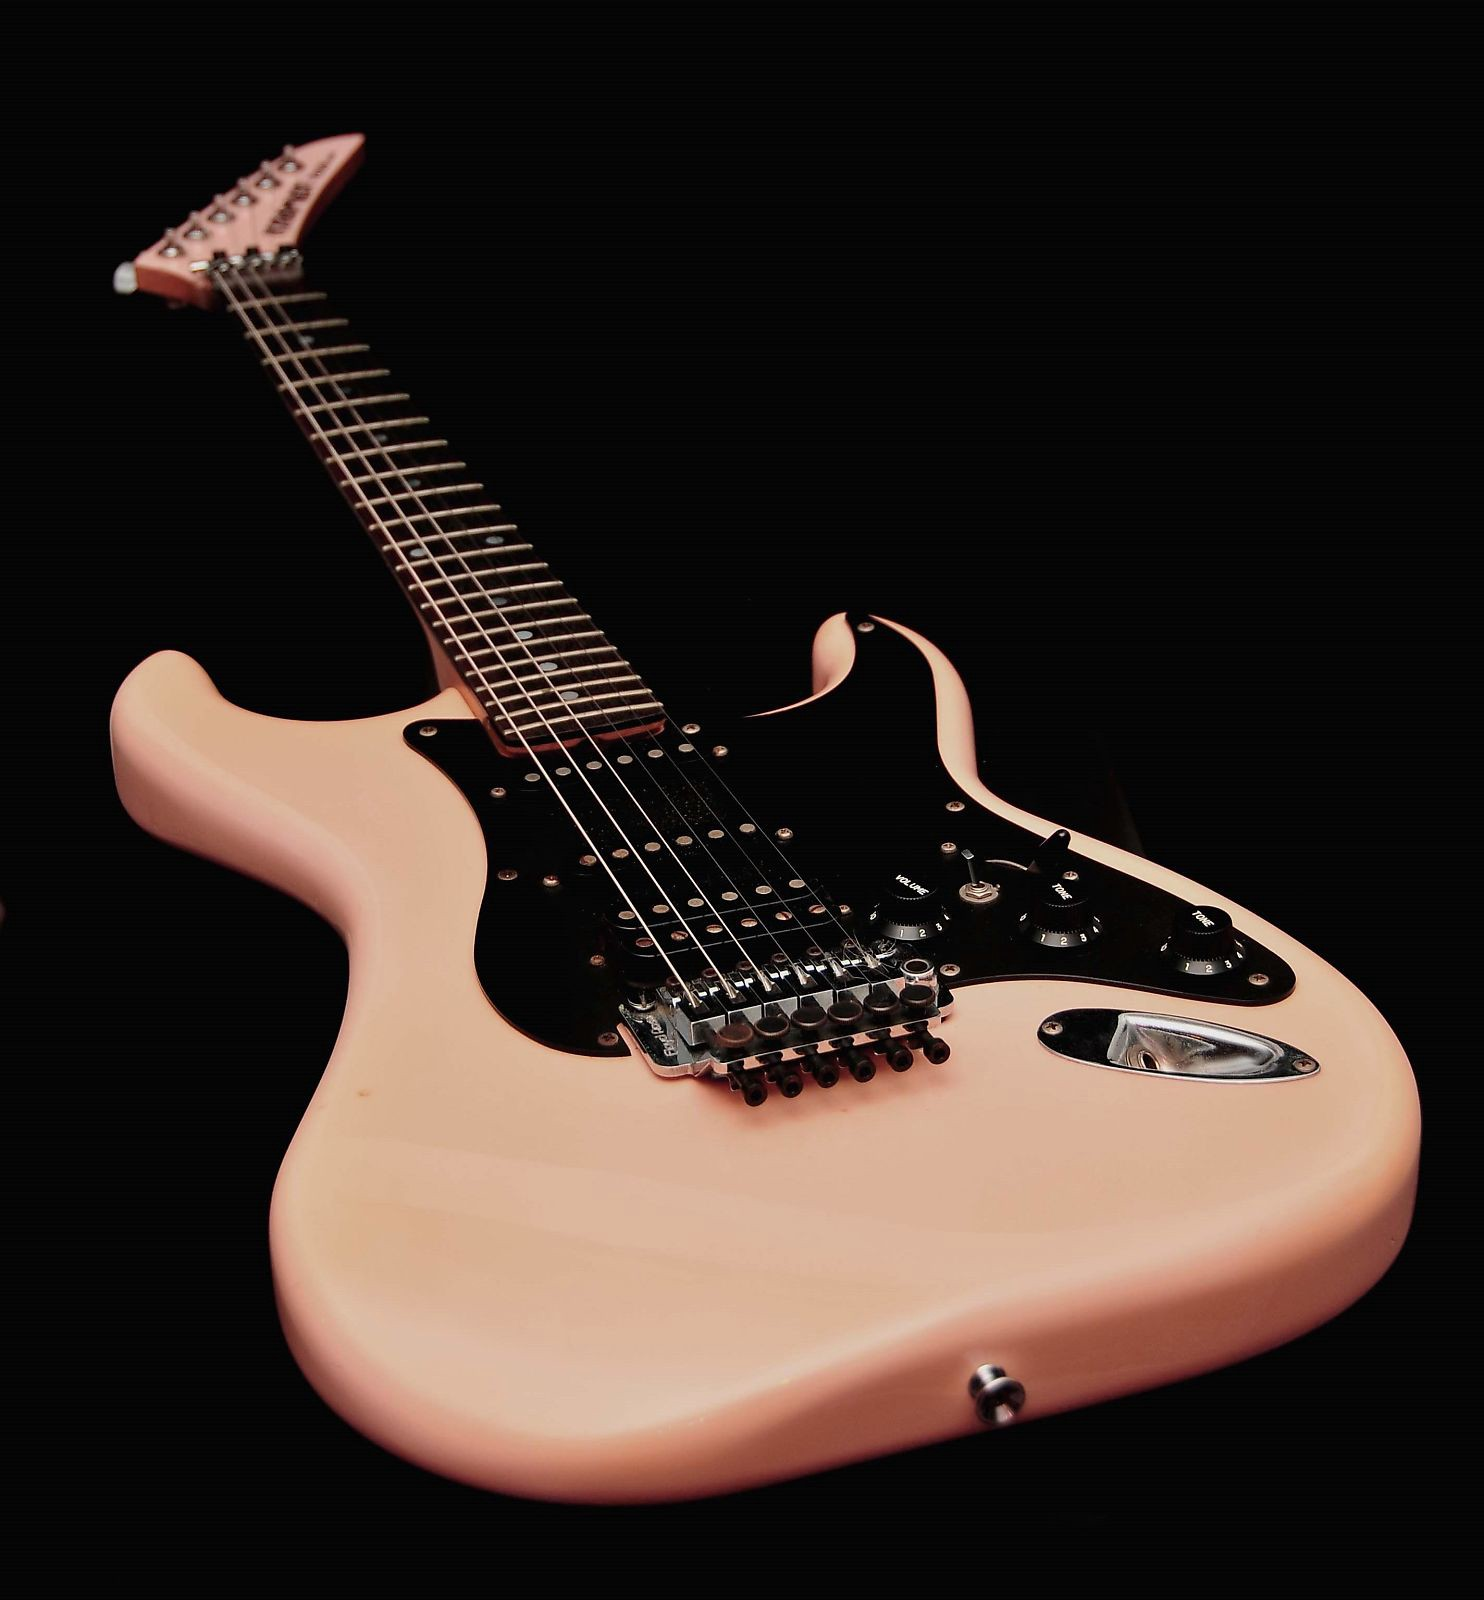 Pink Is The Color Of Love A Guitar Story Matthew Eernisse Medium